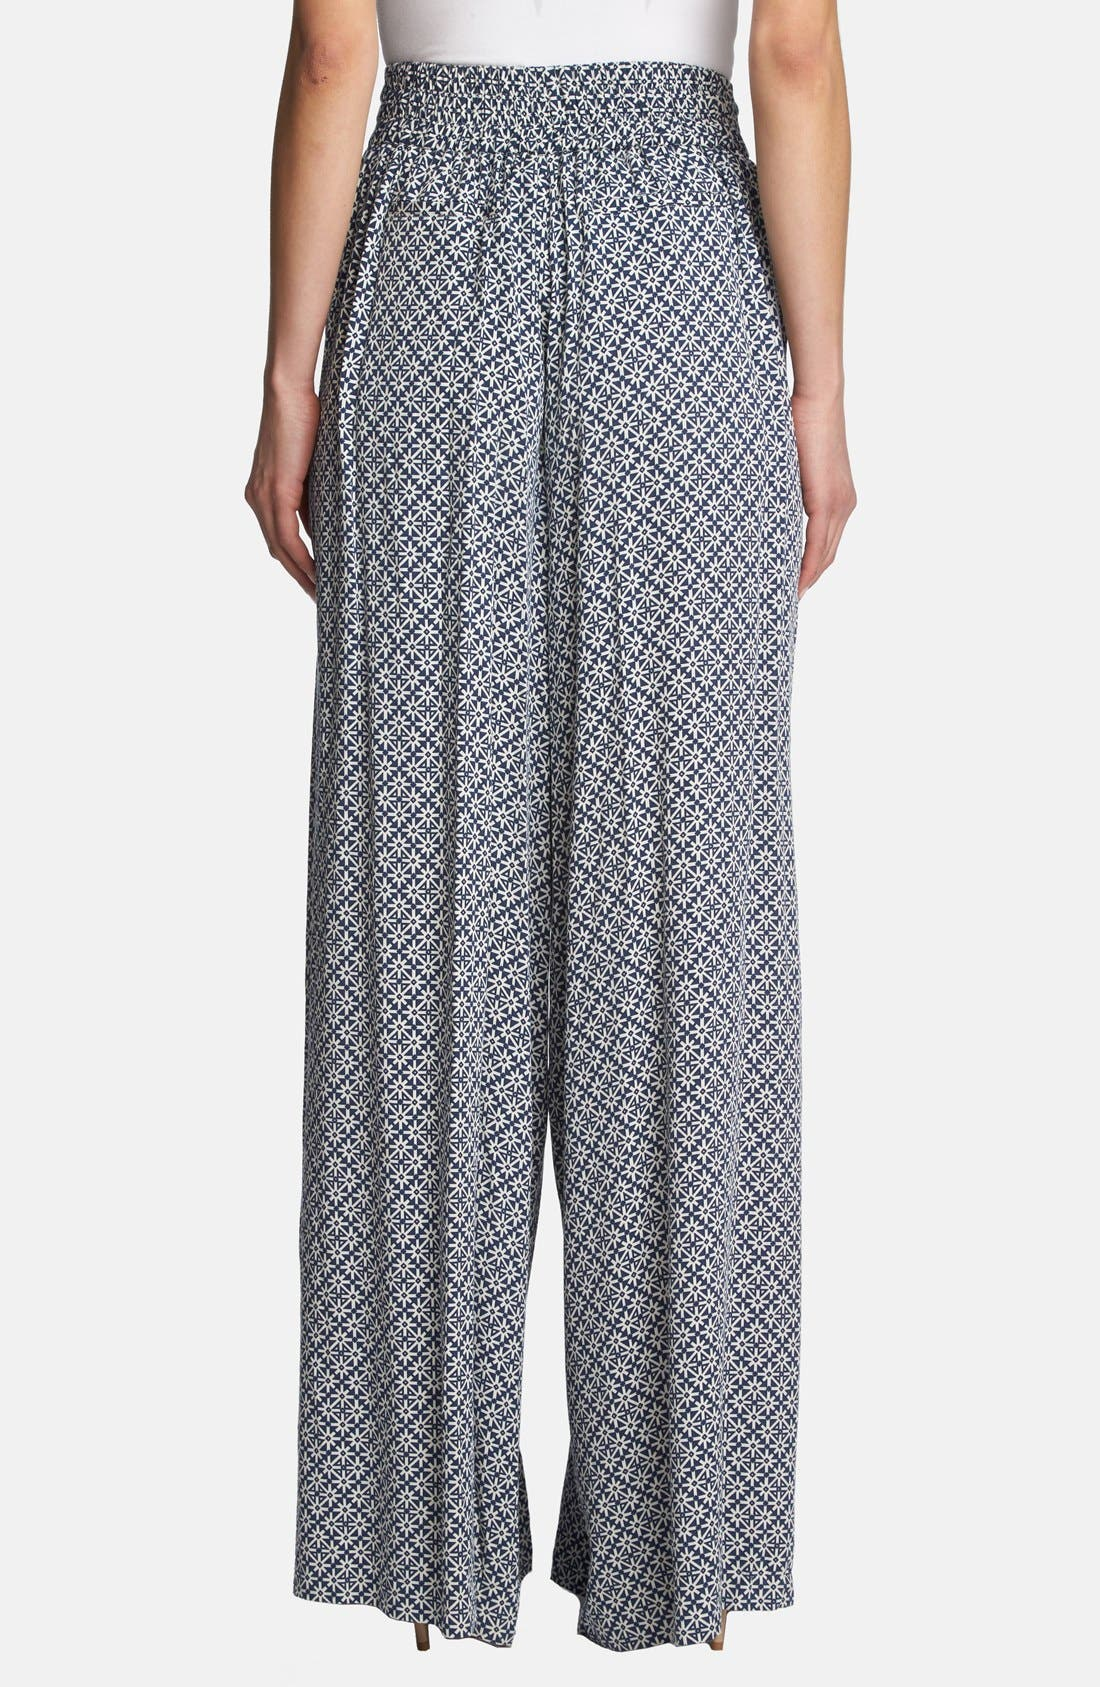 Alternate Image 2  - 1.STATE High Rise Wide Leg Print Trousers